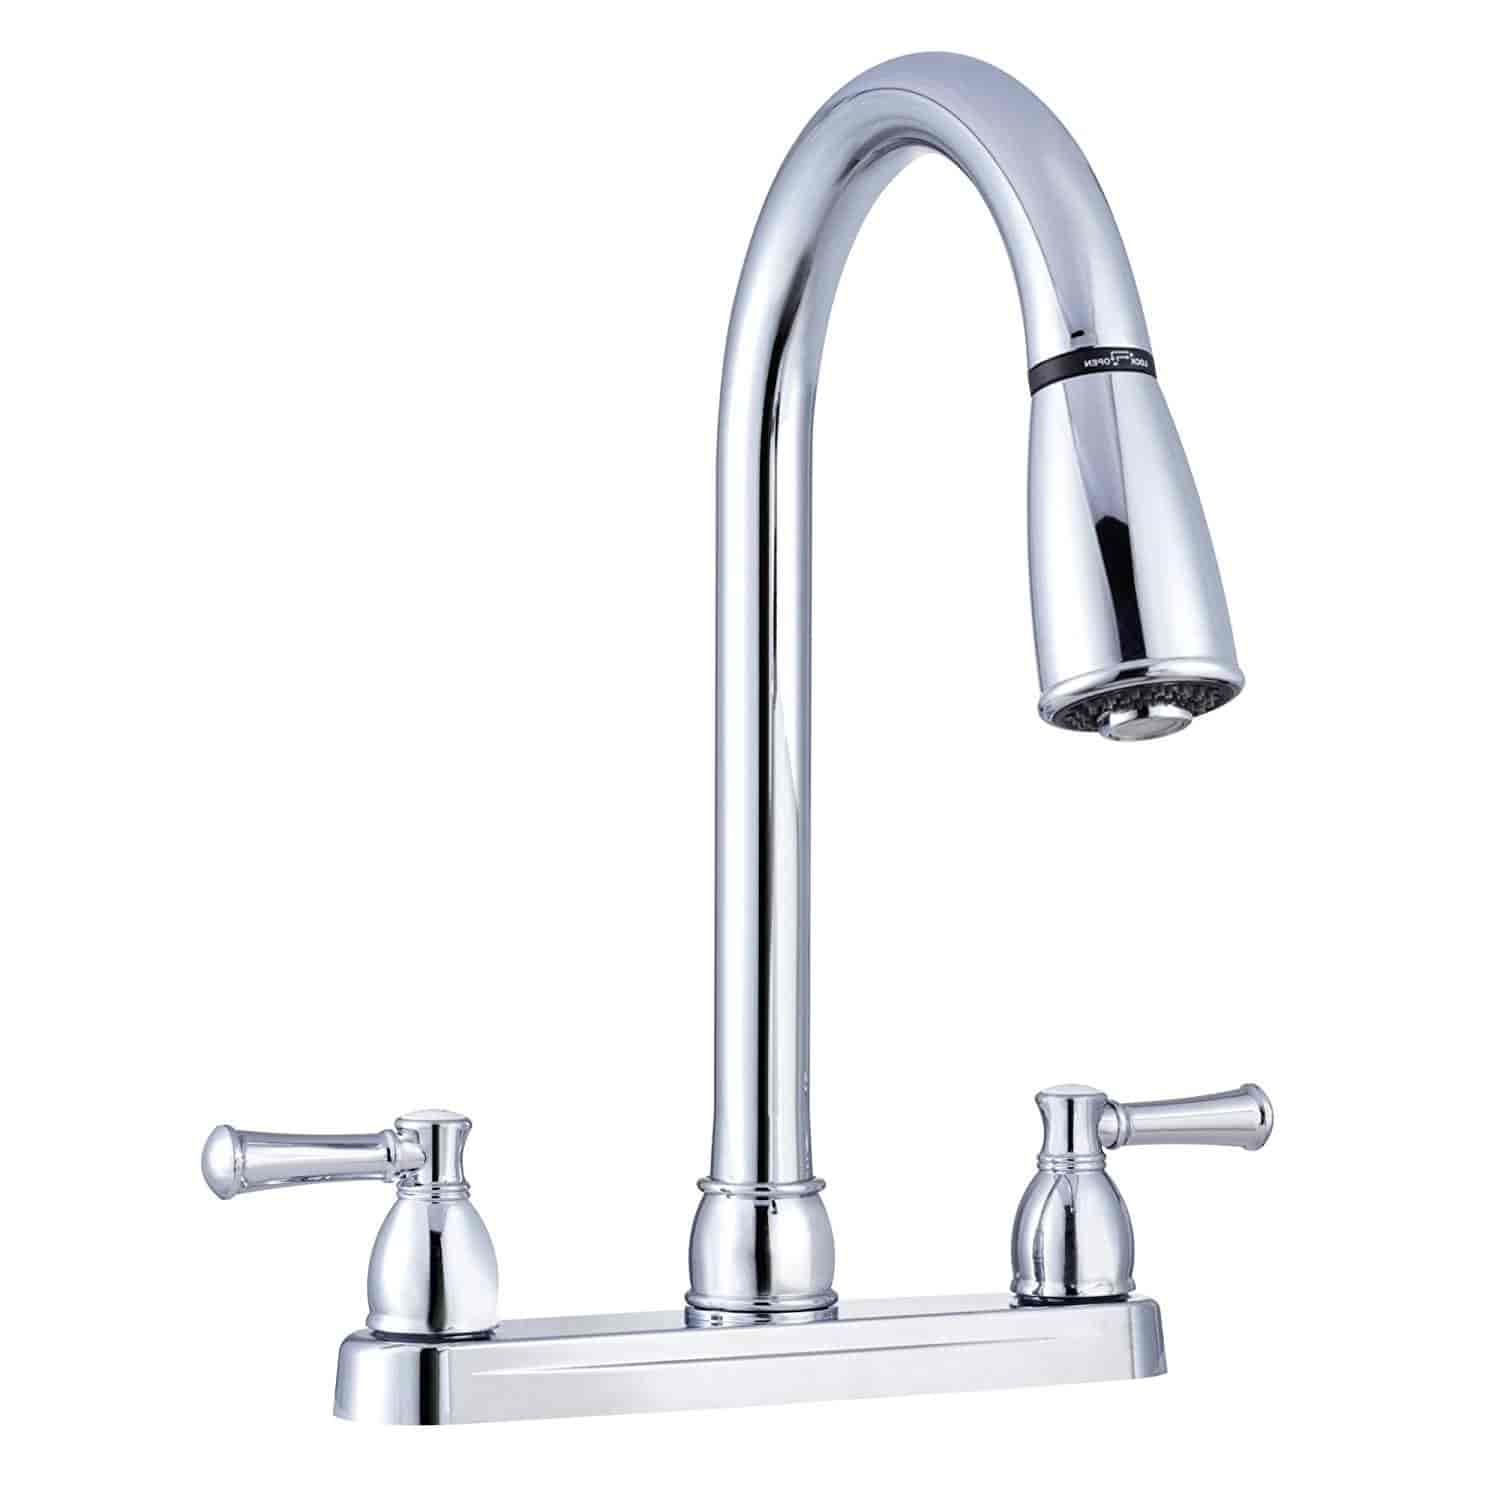 Buy Dura Faucet Df Pk350l Cp Non Metallic Dual Lever Pull Down Rv Kitchen Faucet Replacement Faucet For Motorhomes 5th Wheel Trailer Camper Lifetime Warranty Chrome Features Price Reviews Online In India Justdial